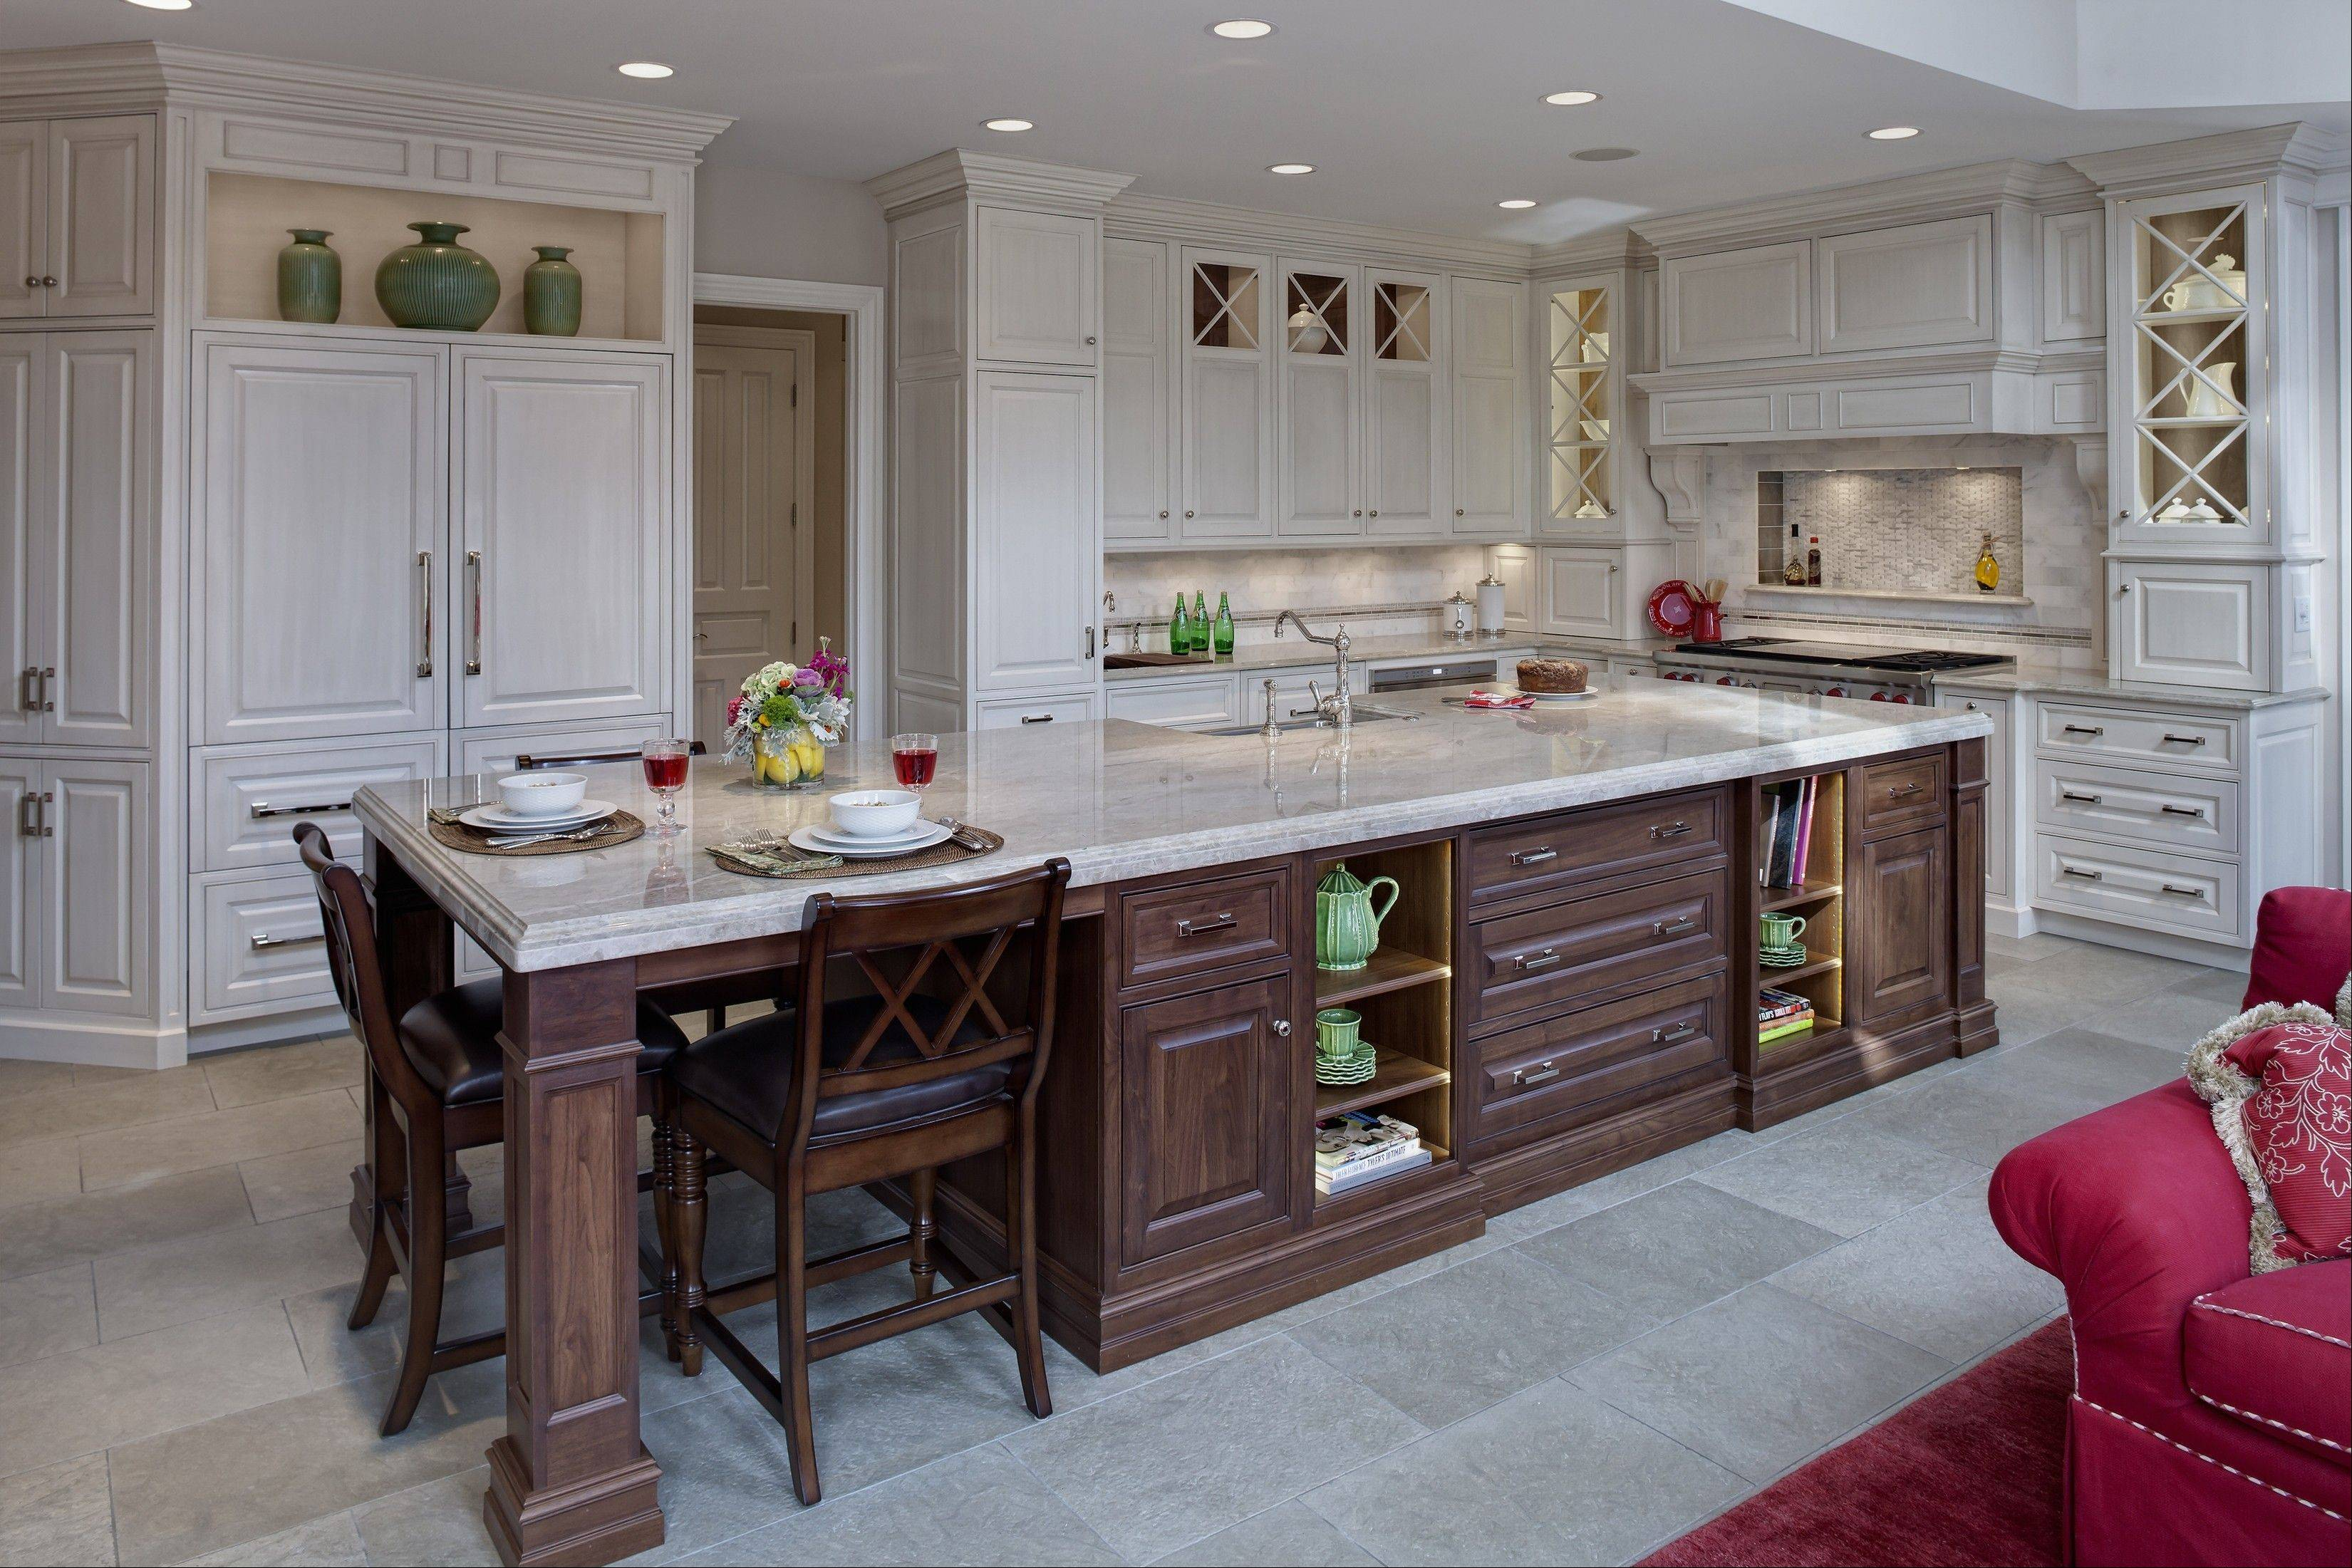 Gail Drury won first place with this Burr Ridge kitchen.